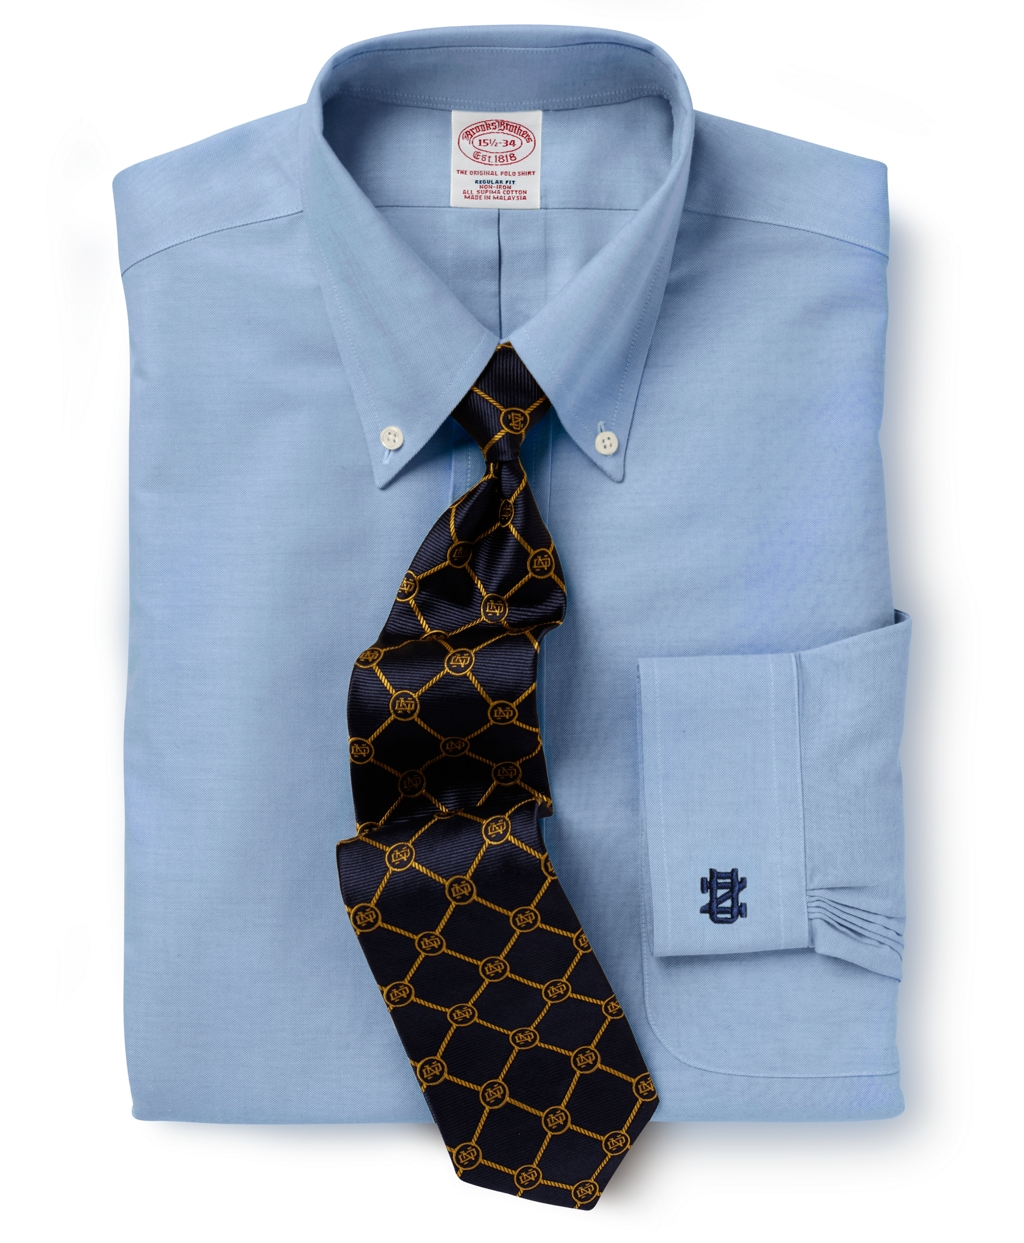 Brooks brothers regular fit dress shirt in blue for men lyst for Brooks brothers dress shirt fit guide